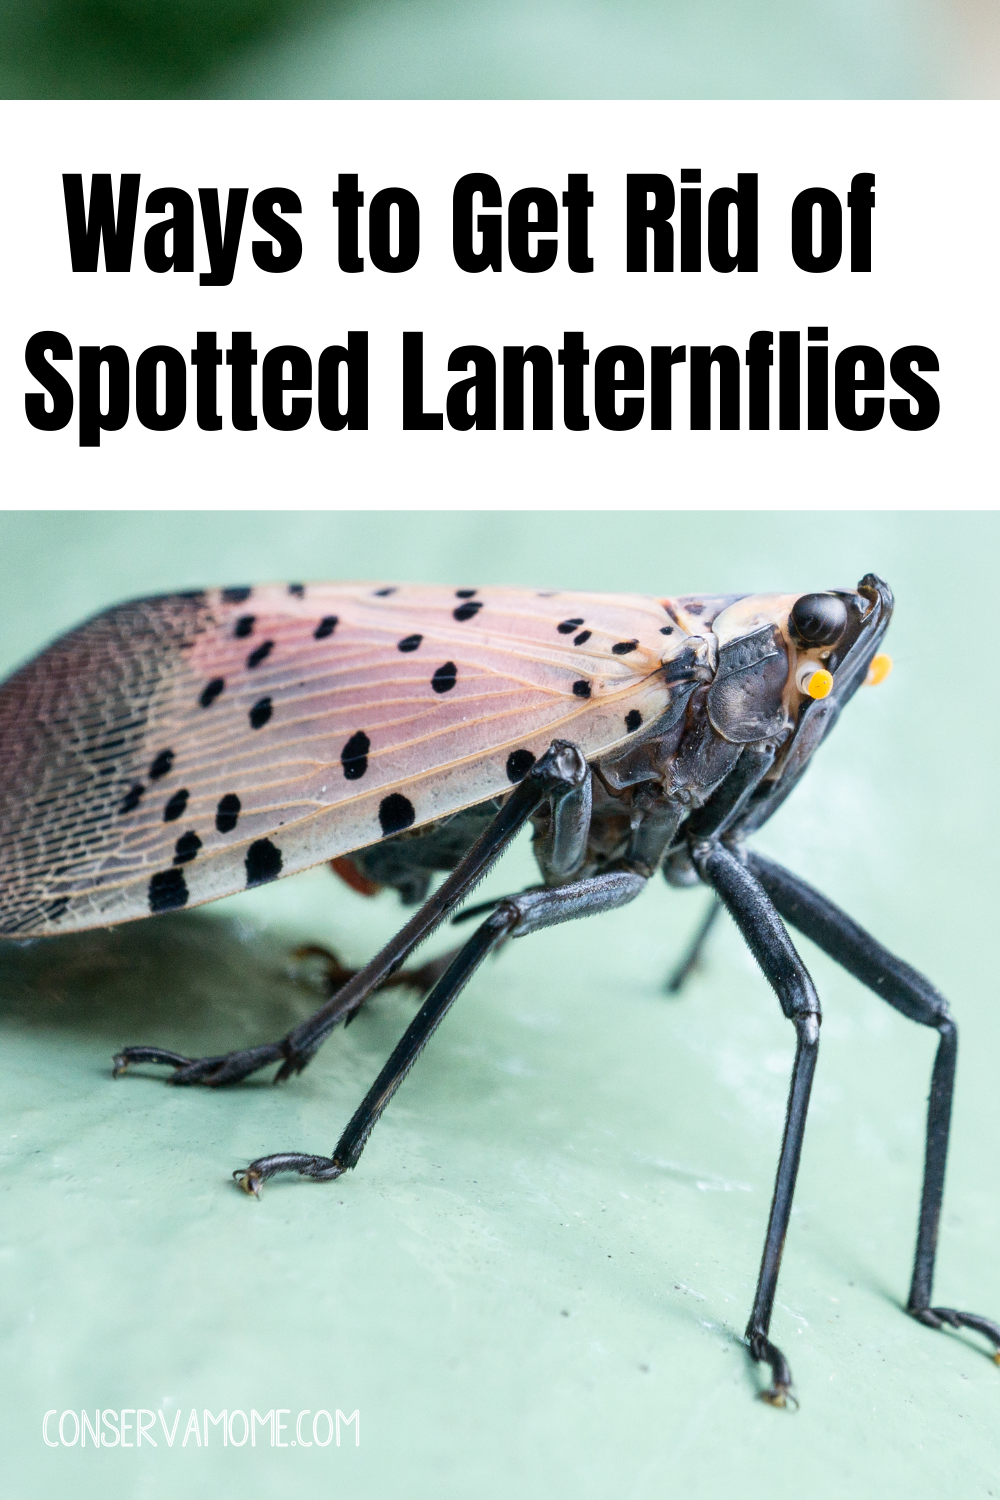 Ways to Get Rid of Spotted Lanternflies